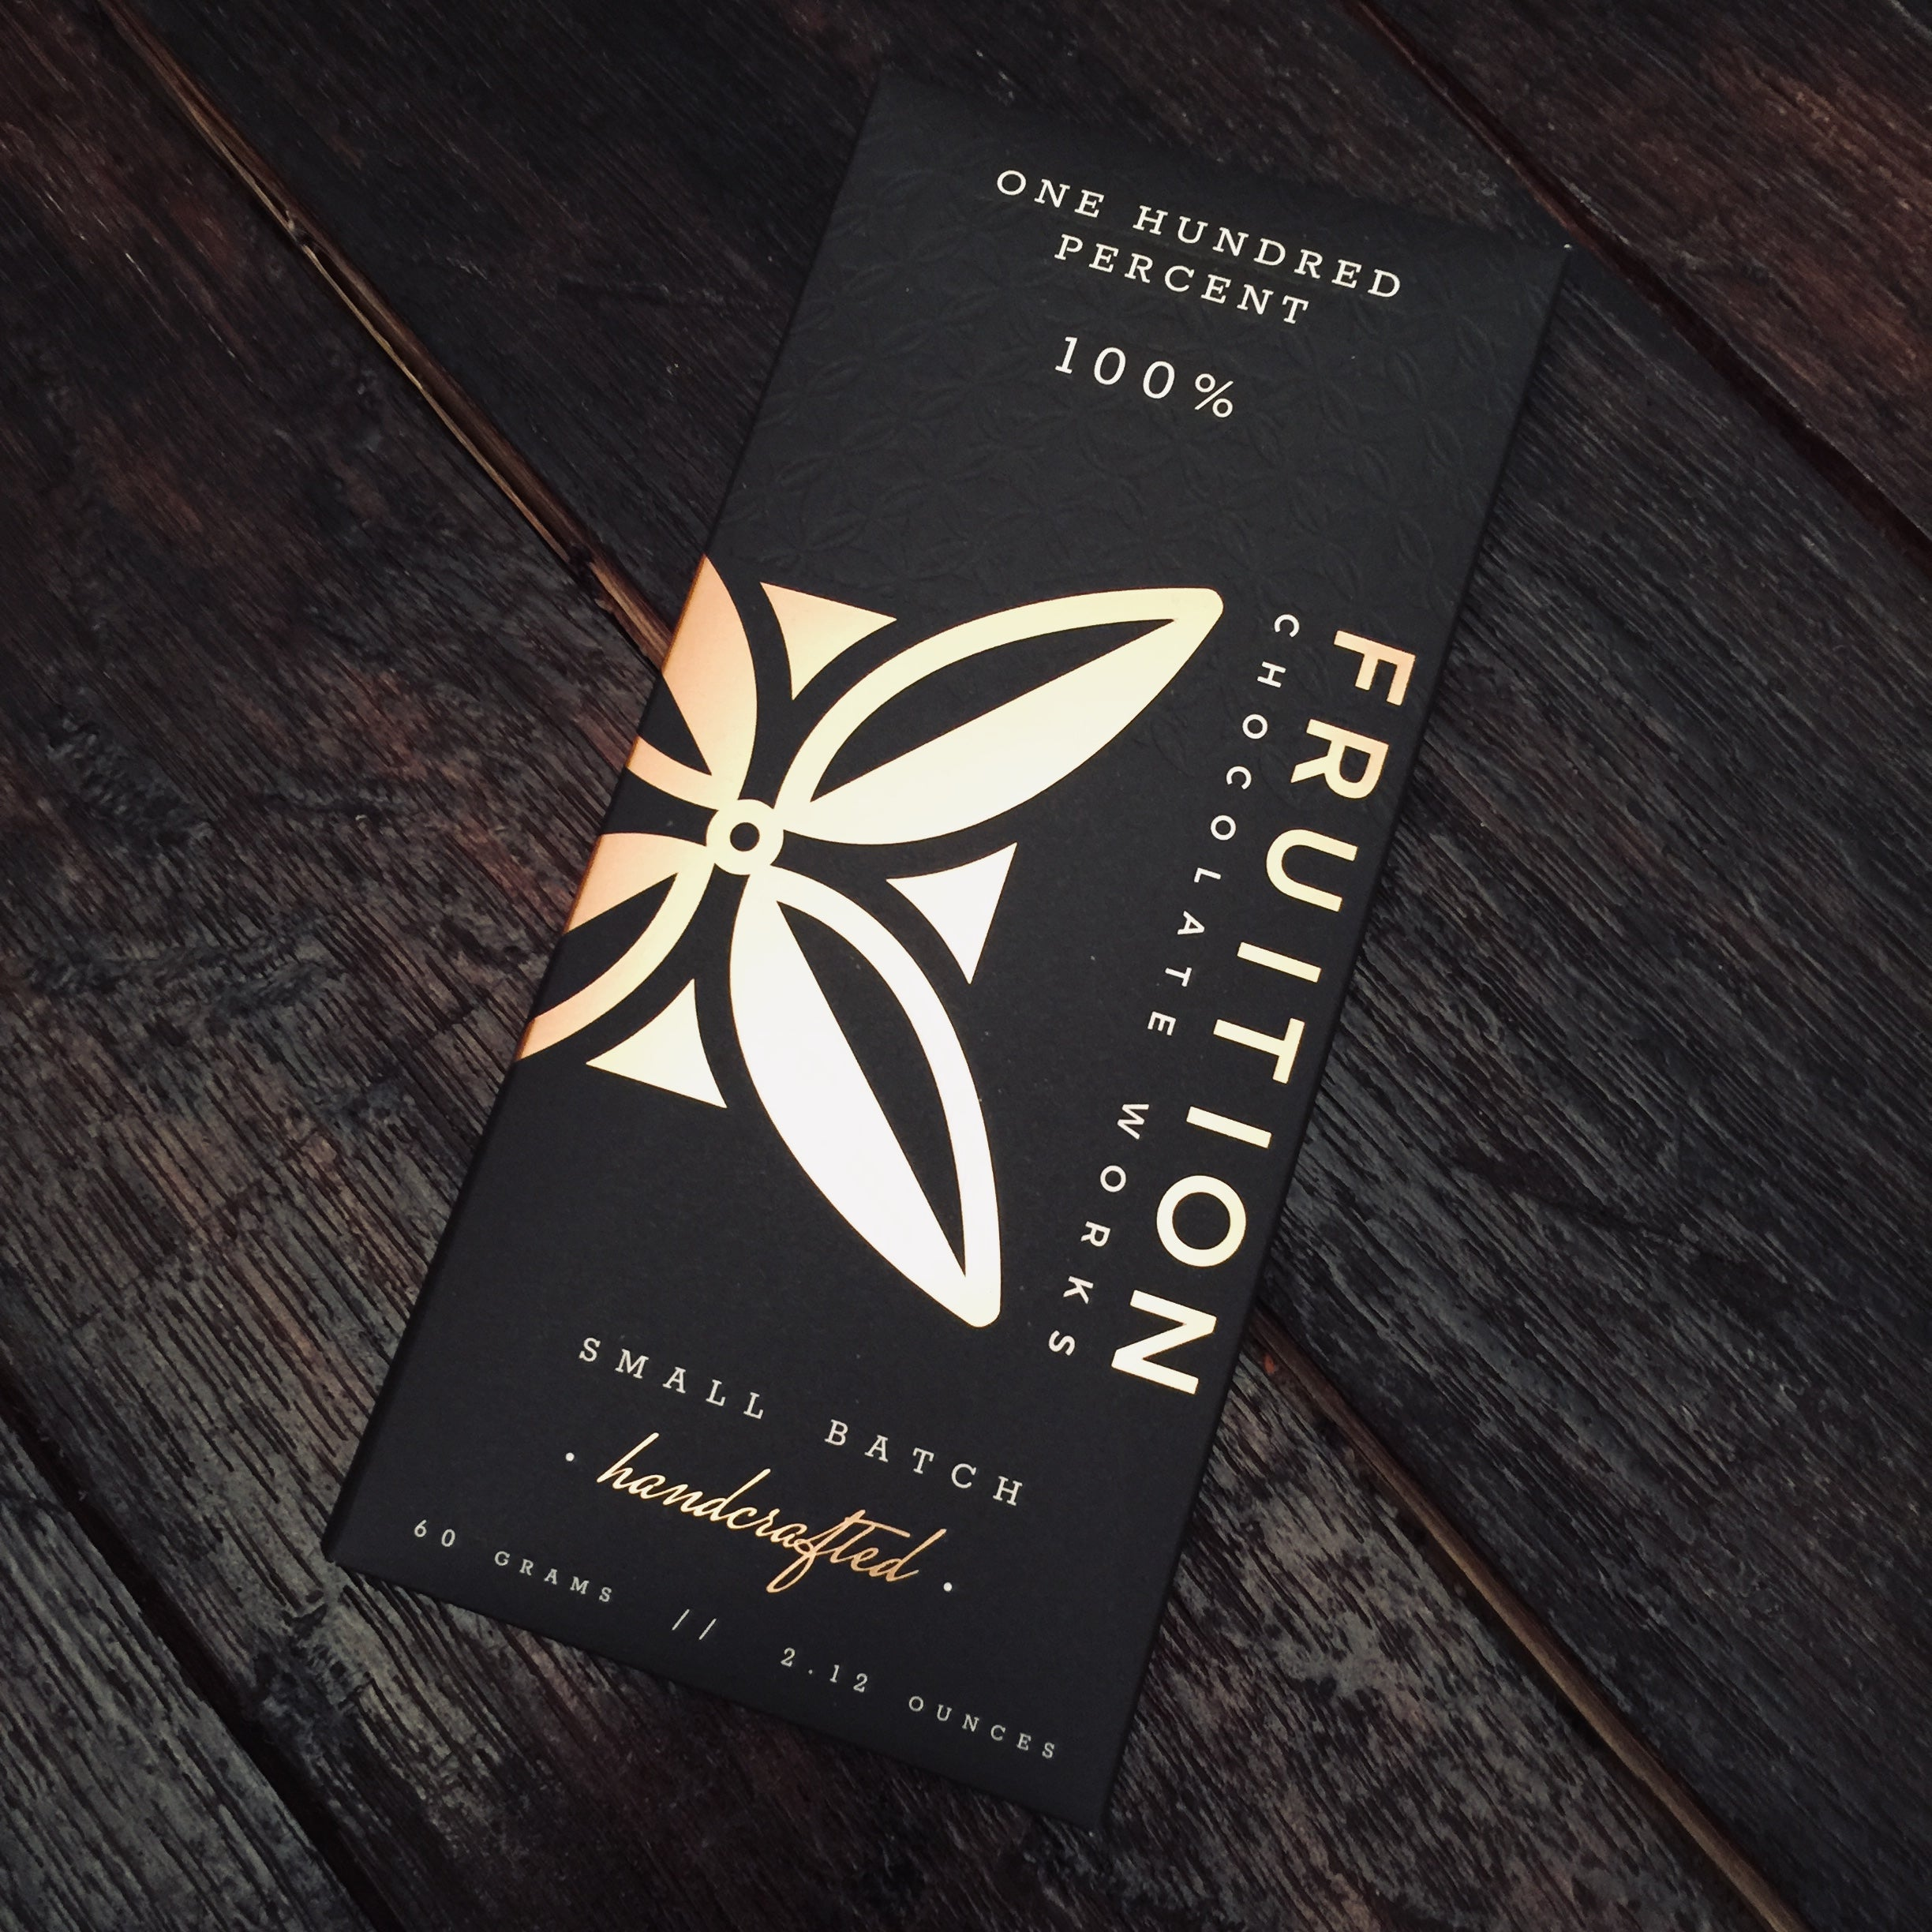 Fruition Chocolate Works 100% Dark Chocolate Bar